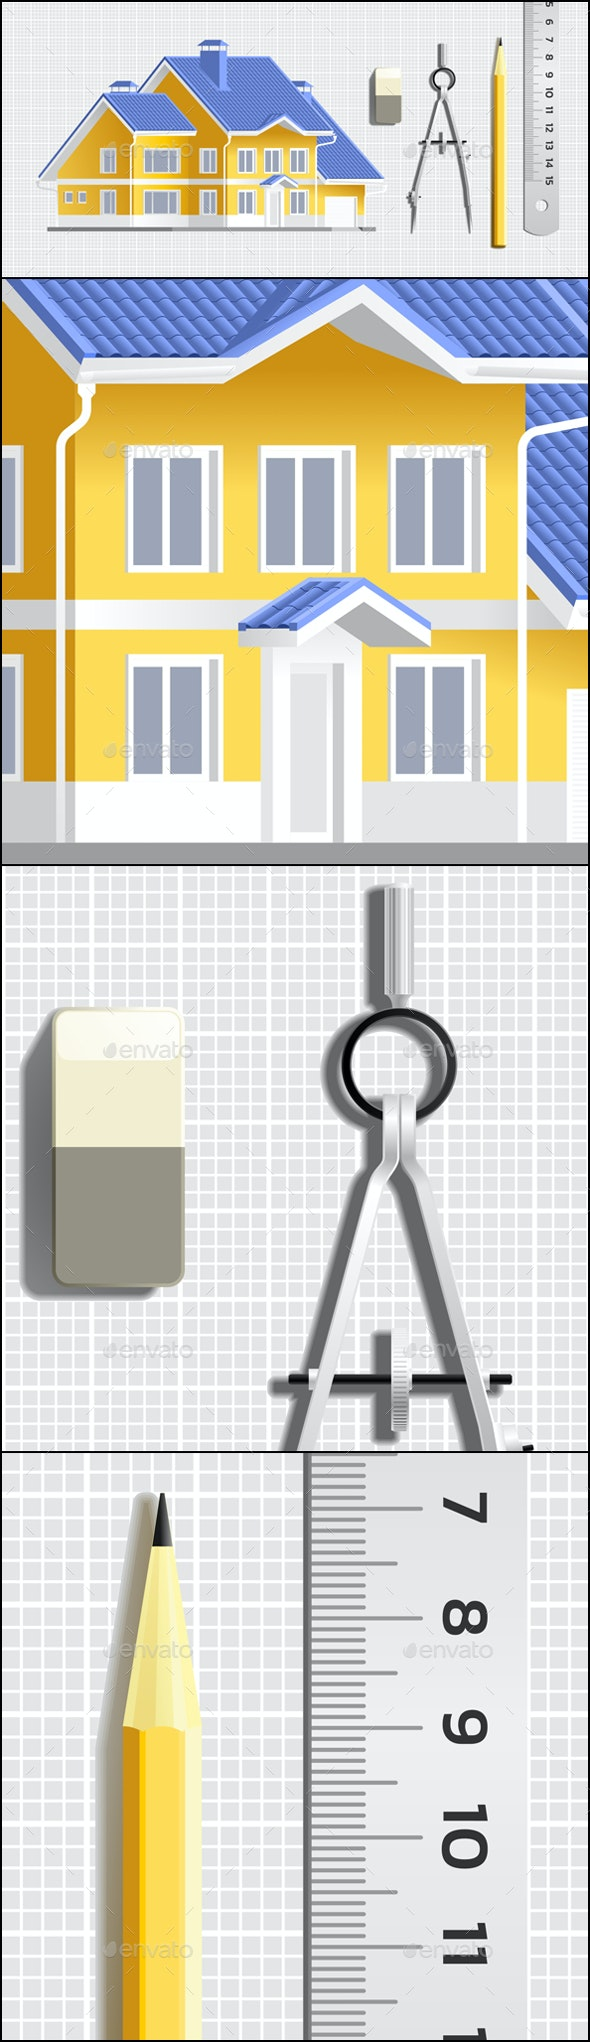 Designing a House - Industries Business